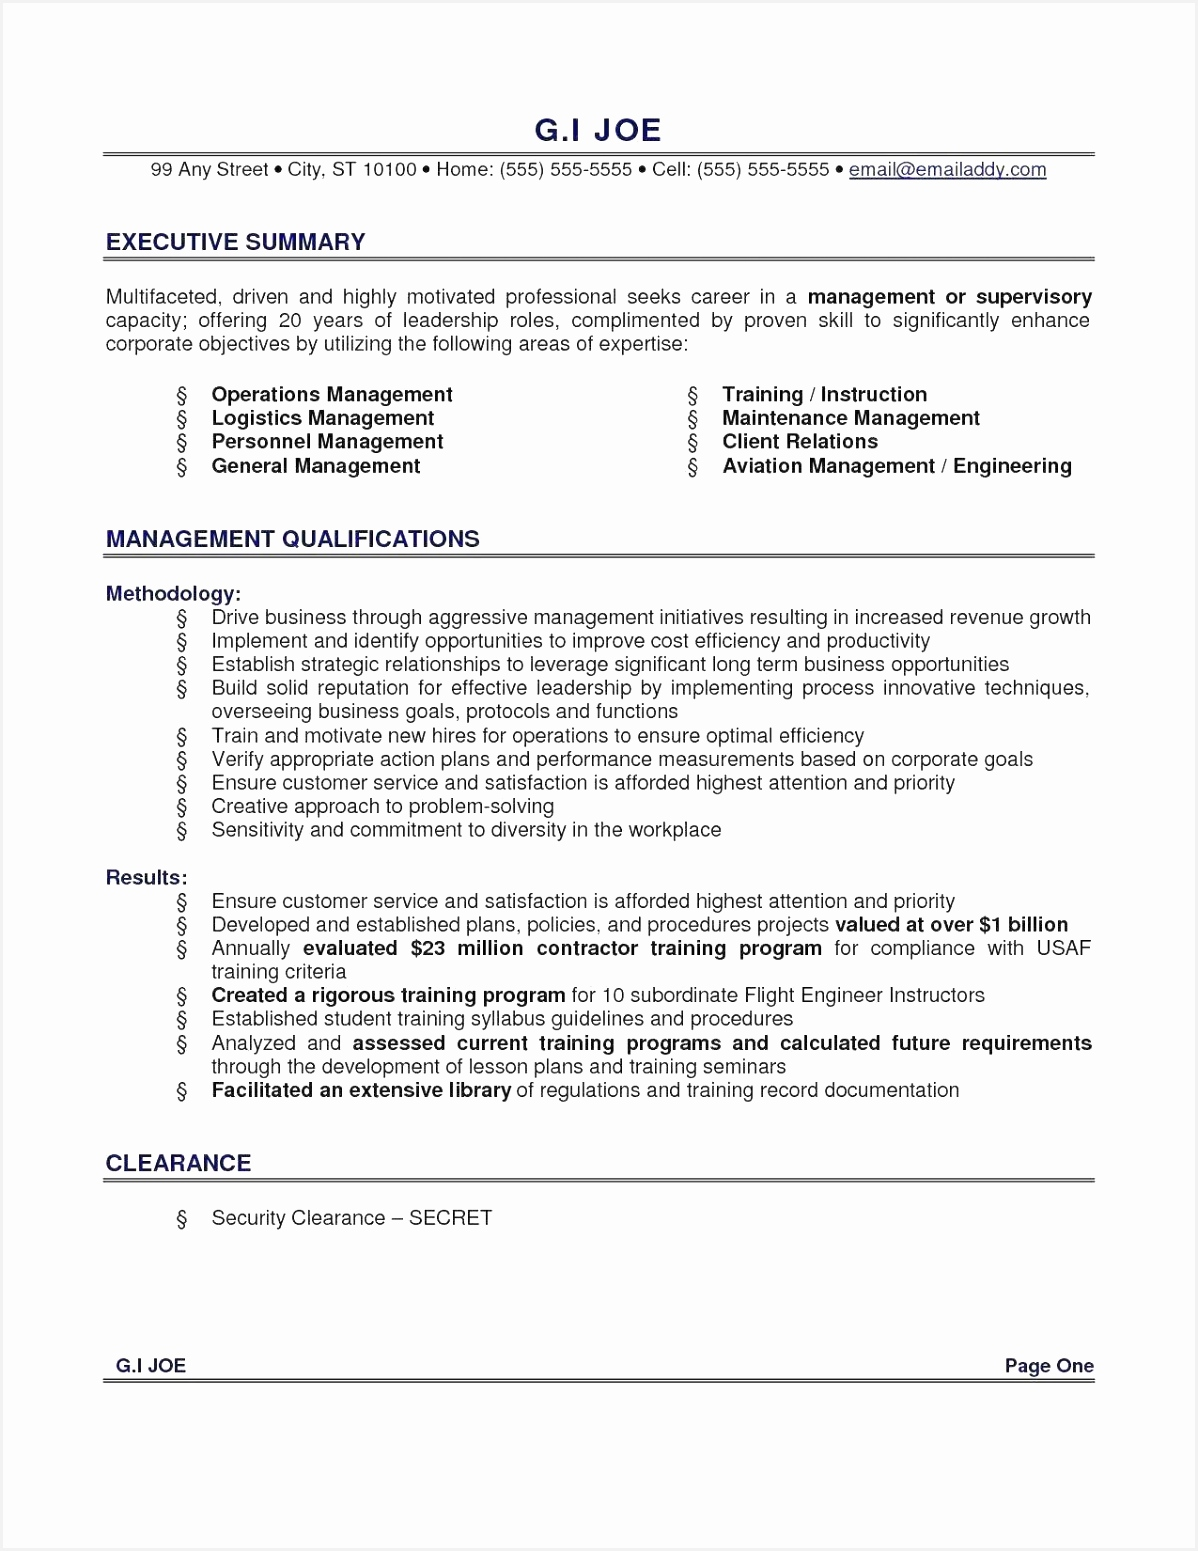 Resume Samples Restaurant Valid Restaurant Resume Sample Modest Examples 0d Good Looking It Manager 15511198eebea